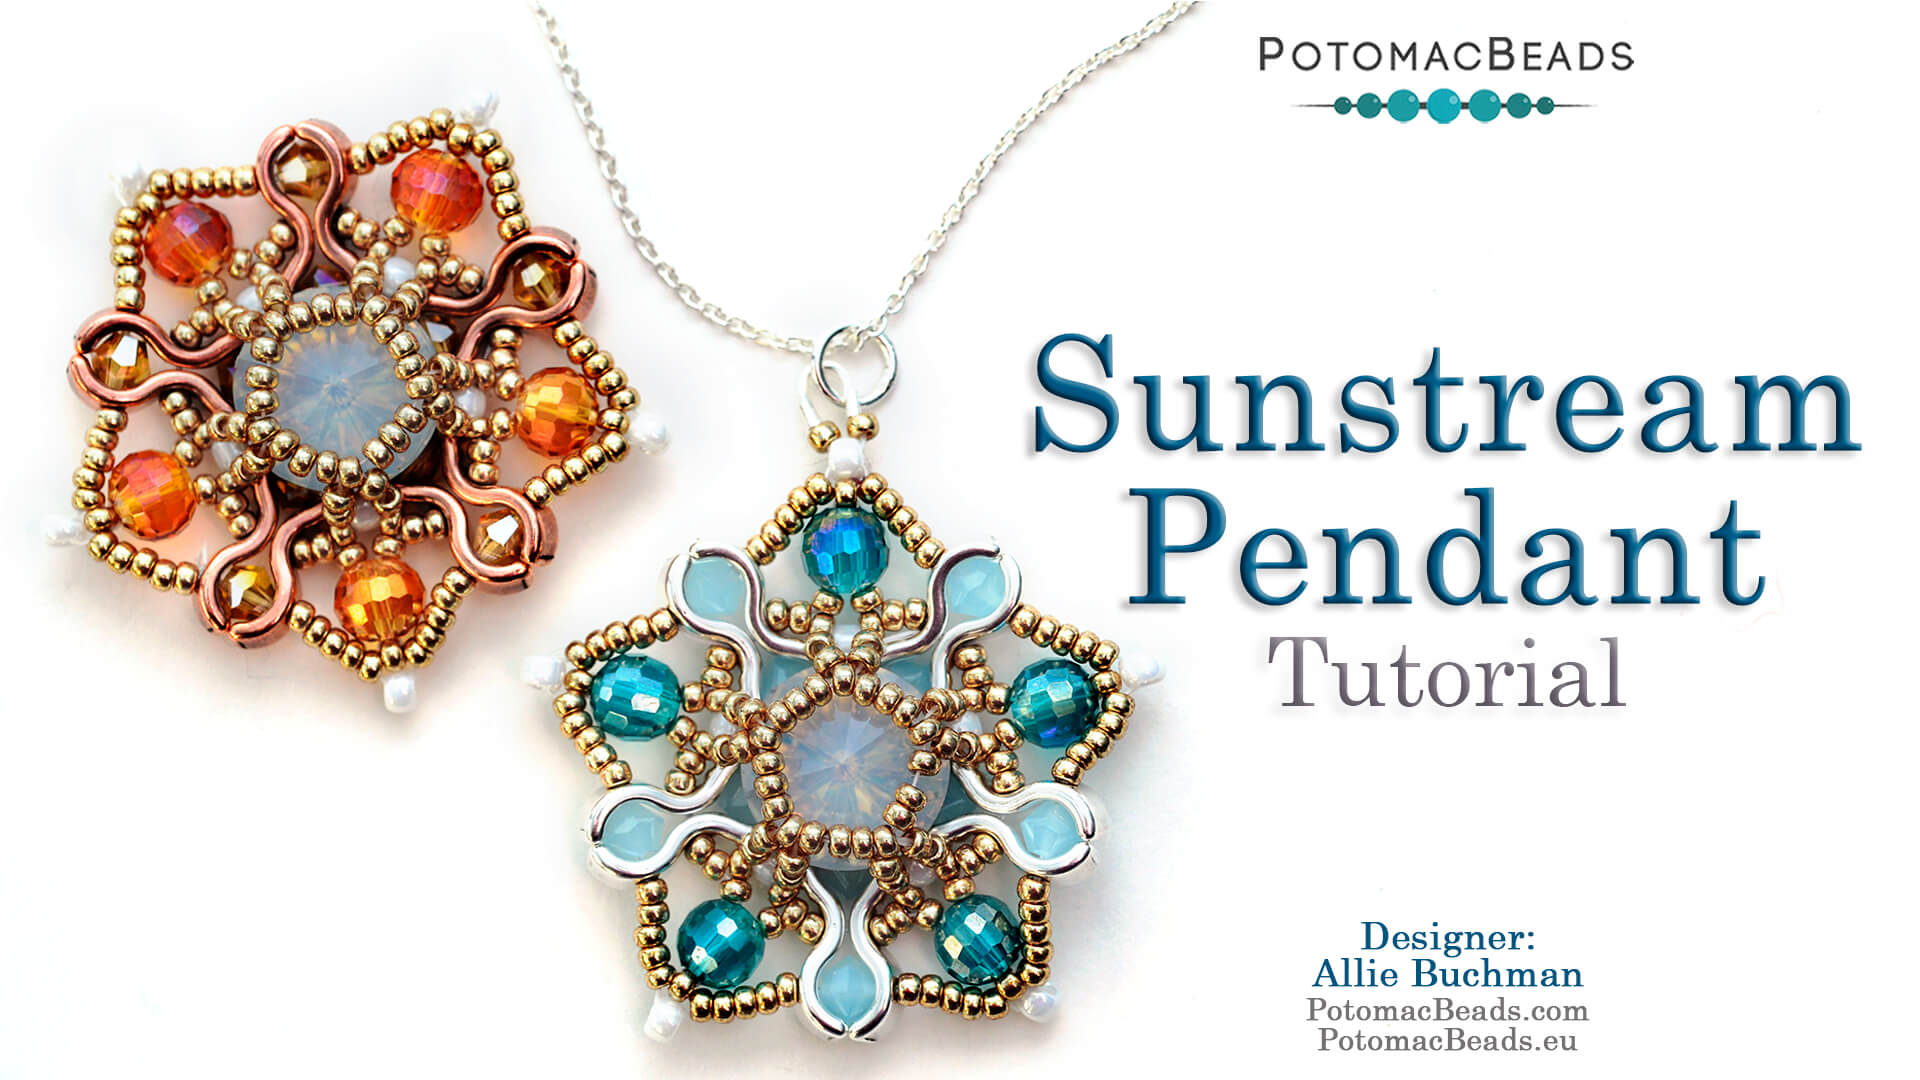 How to Bead / Videos Sorted by Beads / Potomax Metal Bead Videos / Sunstream Pendant Tutorial